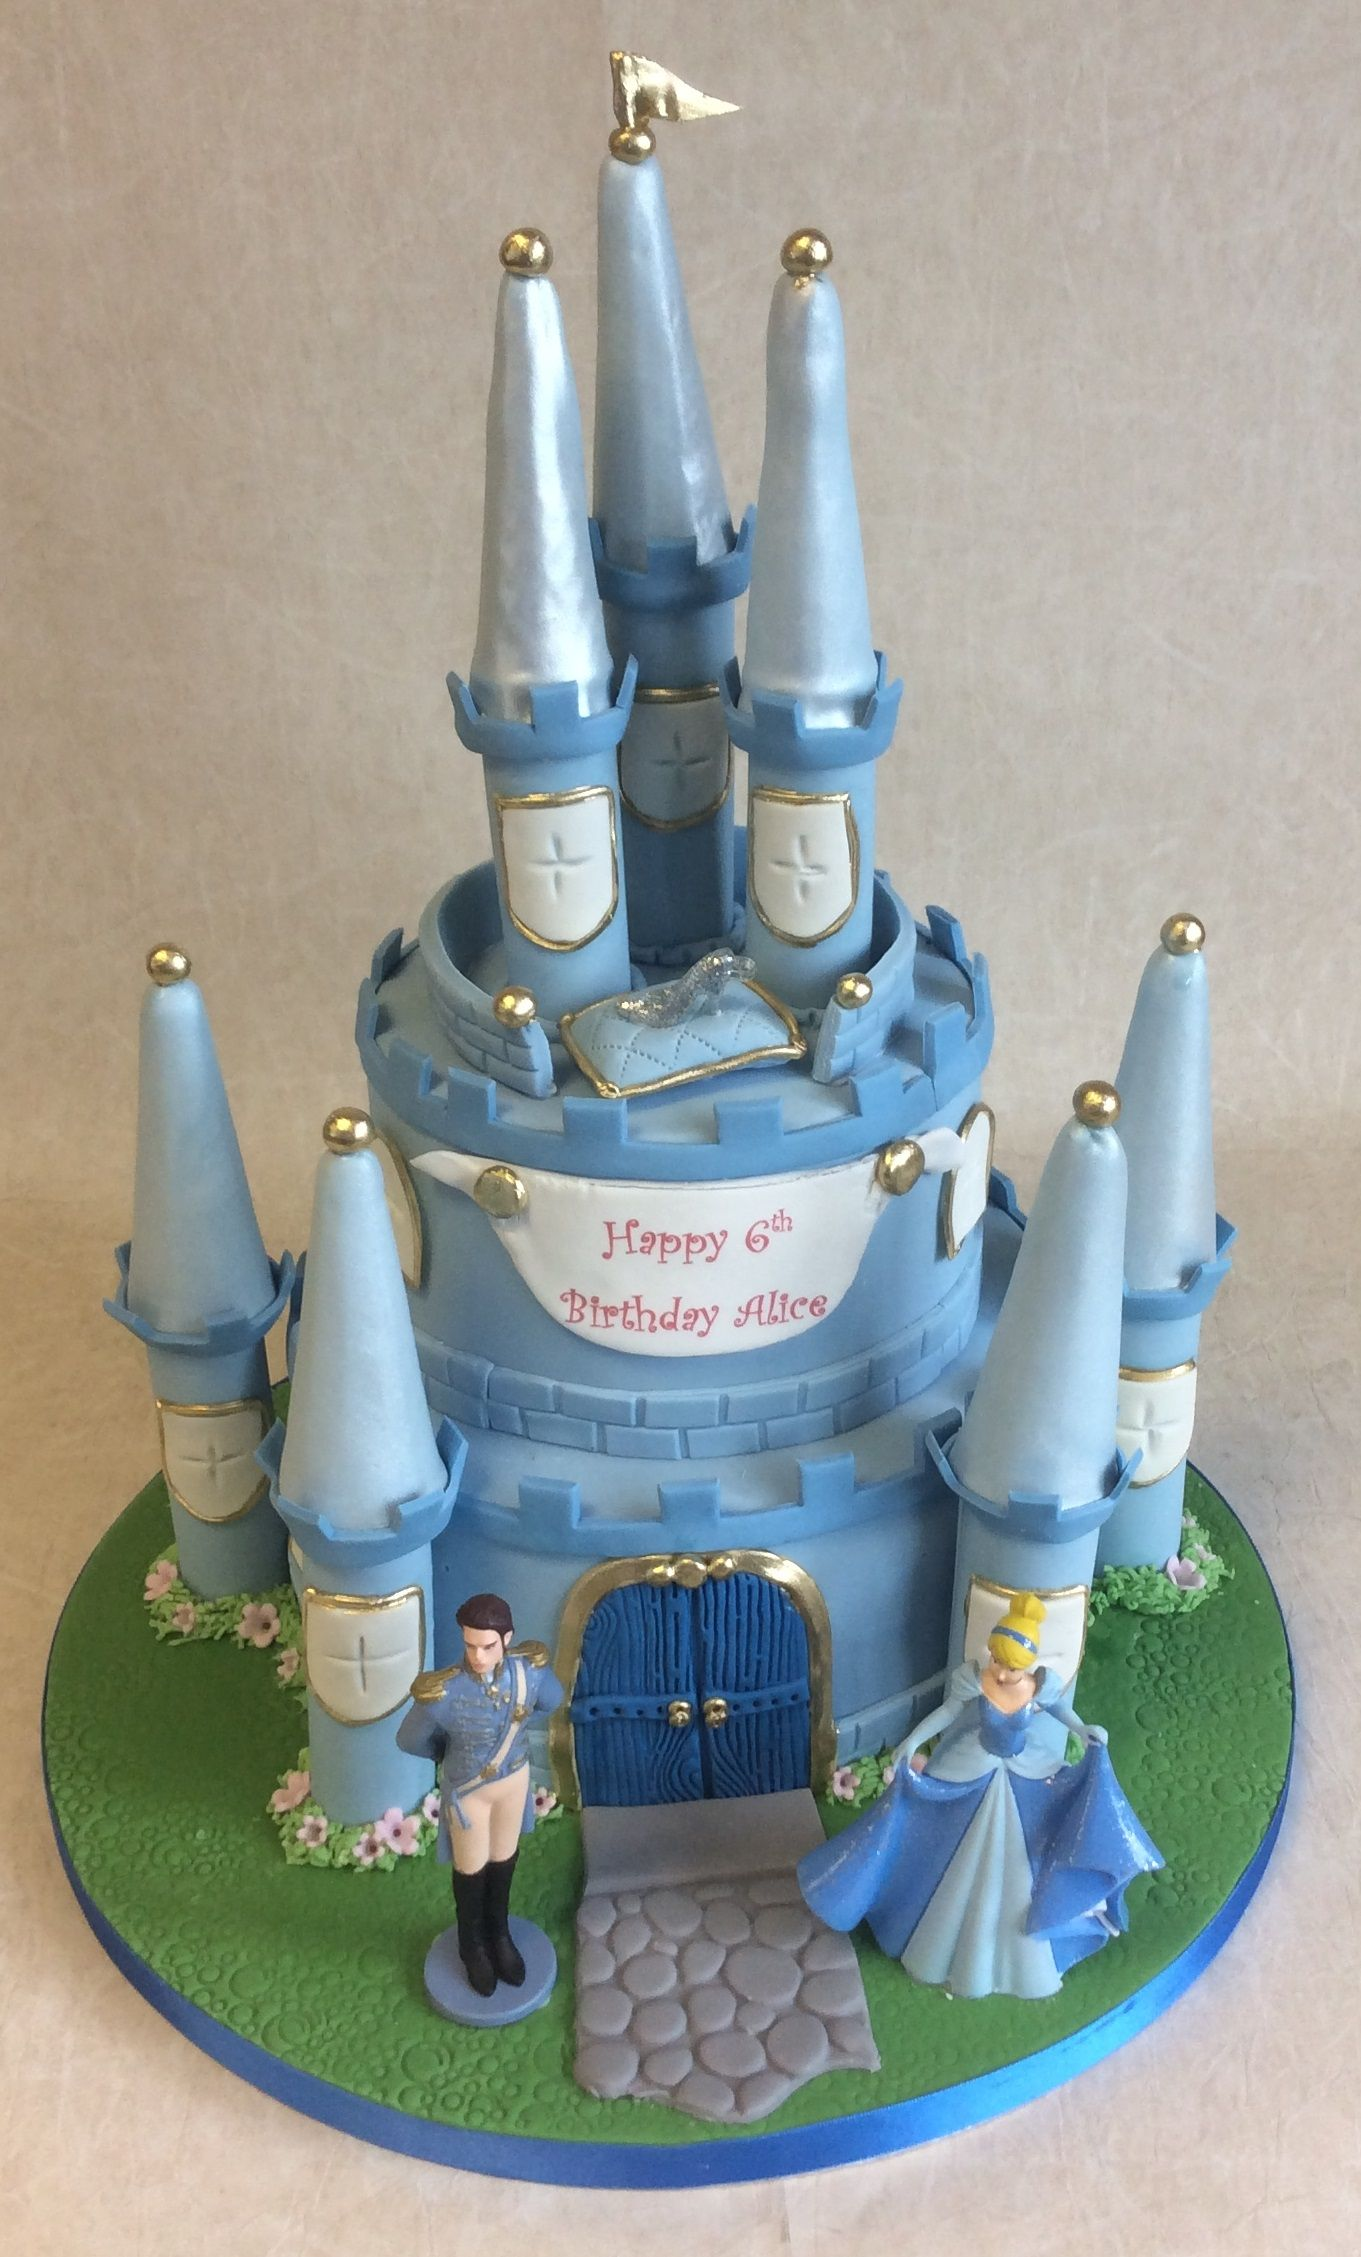 2 tier cinderella castle cake including non-edible figures of